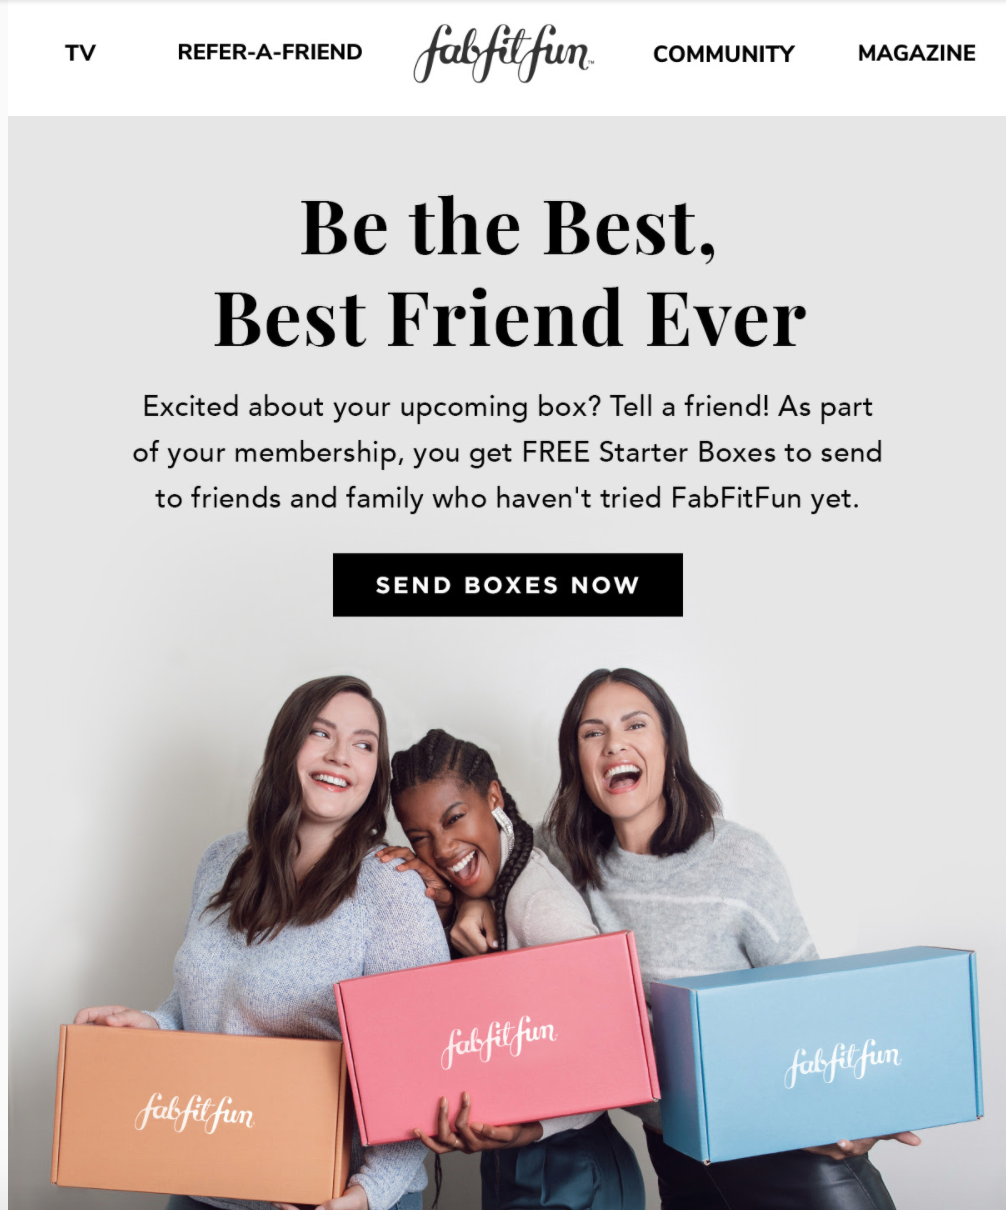 referral program with email marketing.